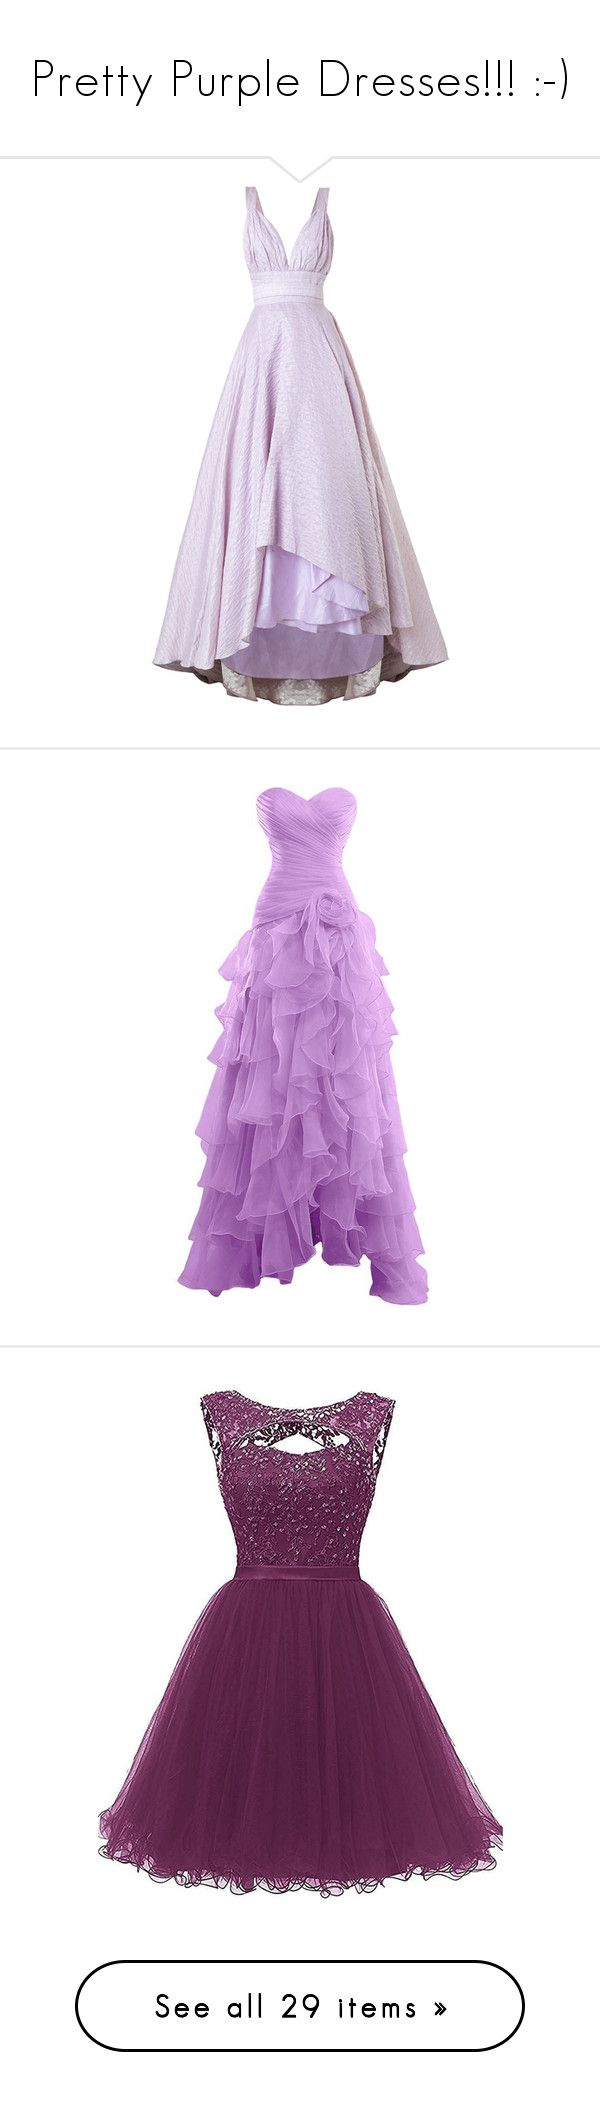 """""""Pretty Purple Dresses!!! :-)"""" by vahrendsen1988 ❤ liked on Polyvore featuring dresses, gowns, purple evening gowns, purple gown, purple ball gowns, purple evening dress, purple dresses, holiday party dresses, high low party dresses and high low prom dresses"""